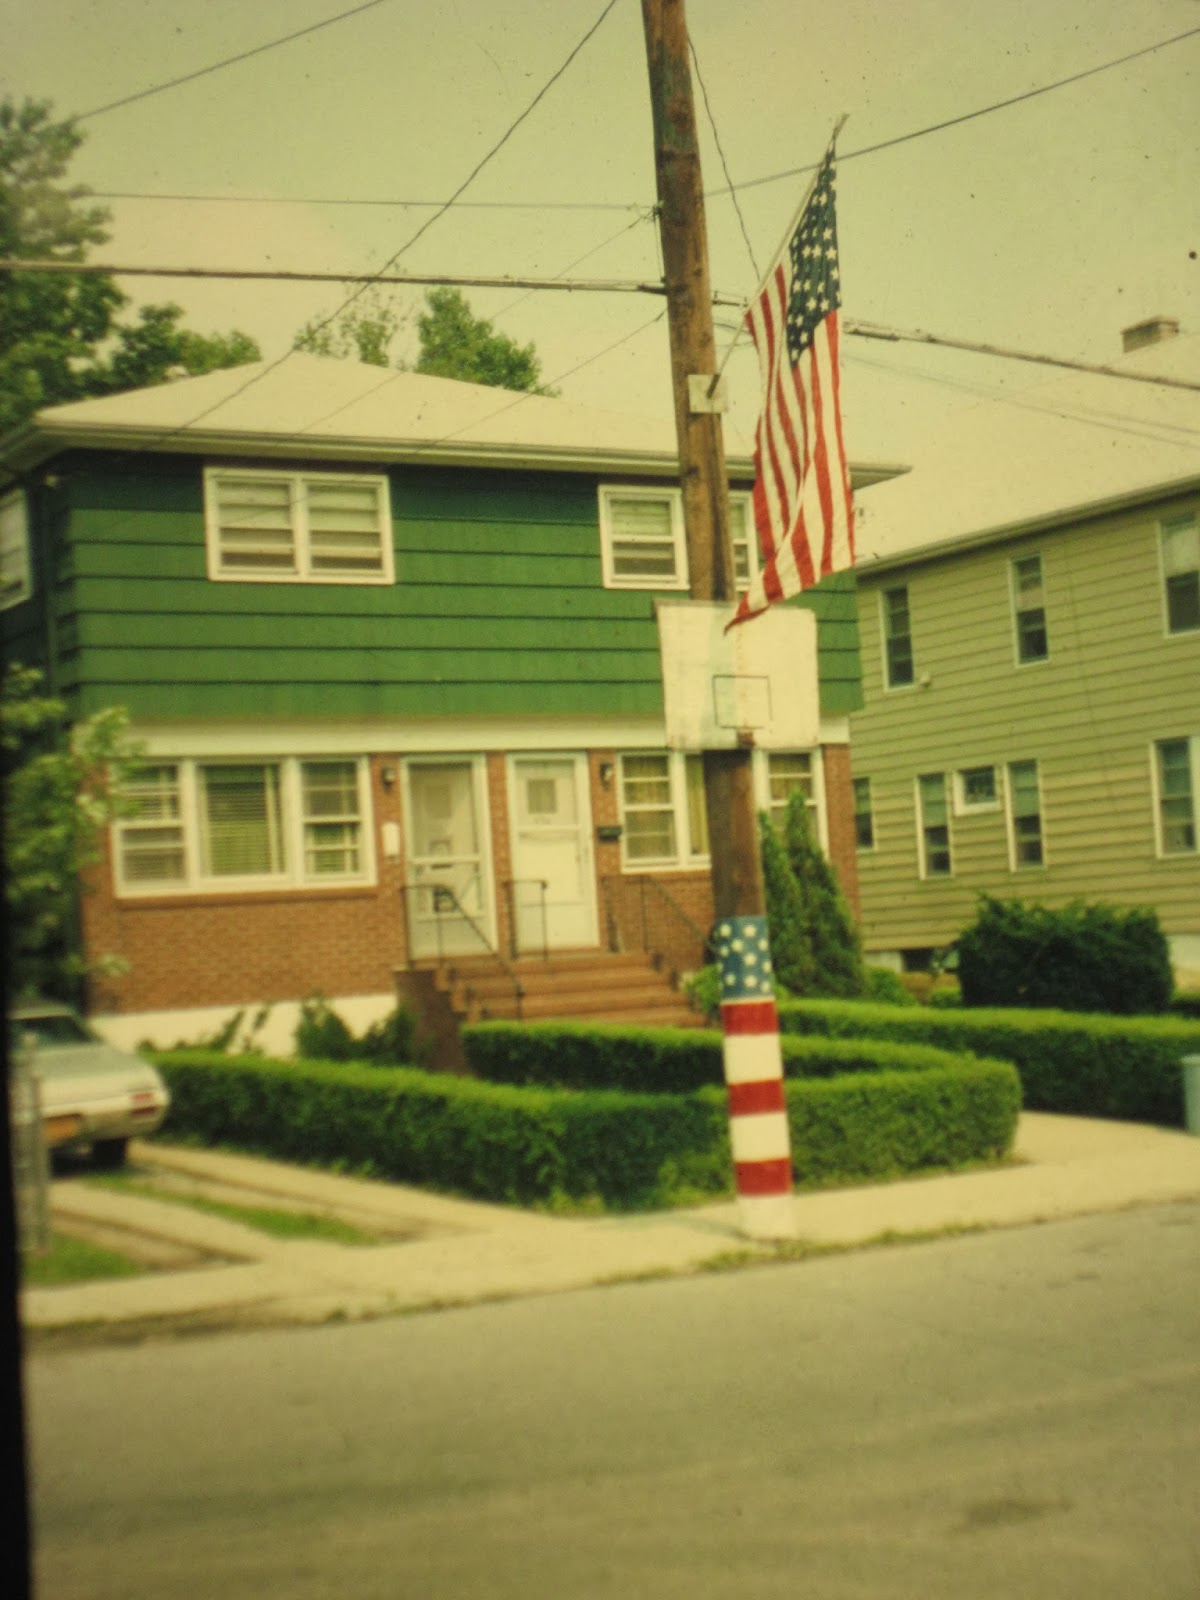 336 Simonson Ave Staten Island, New York August 1978